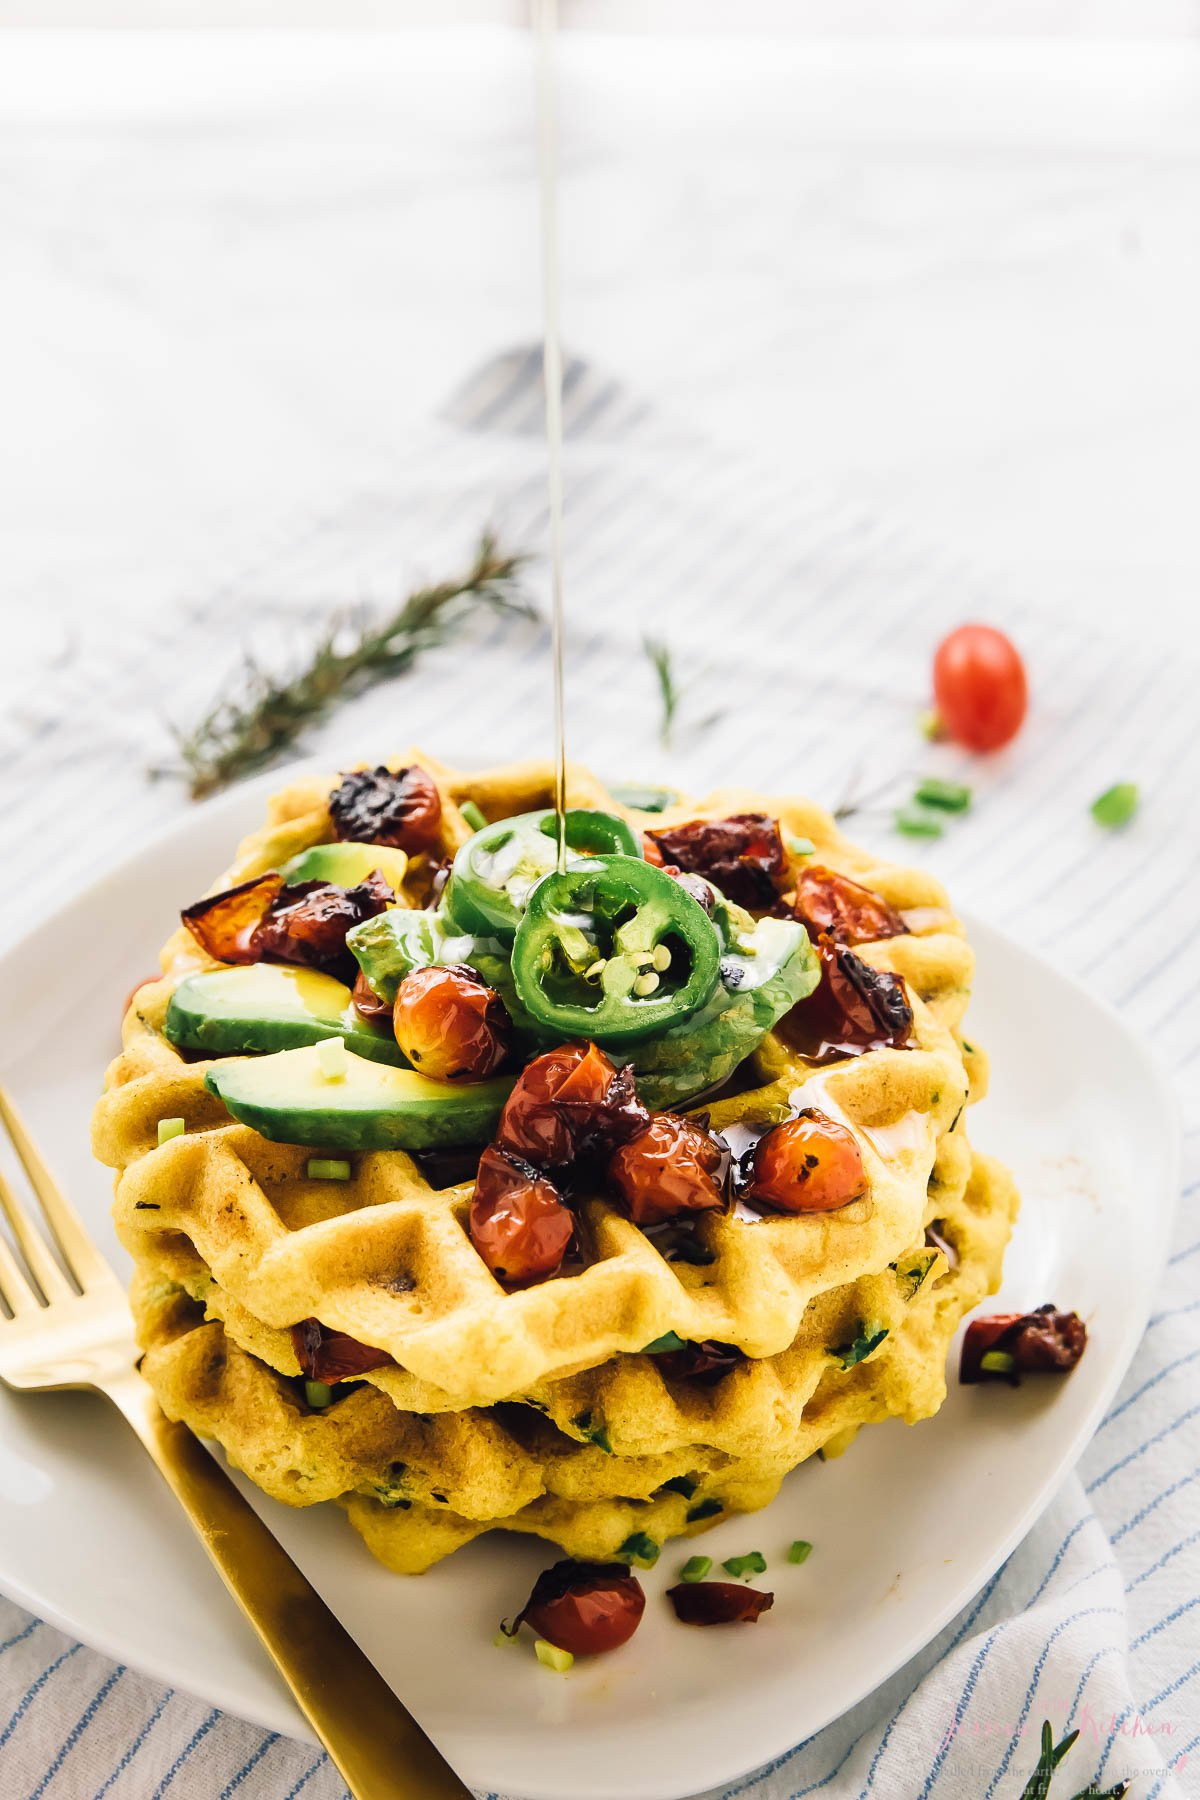 Jalapeño Cornbread Waffles with Roasted Garlic and Rosemary